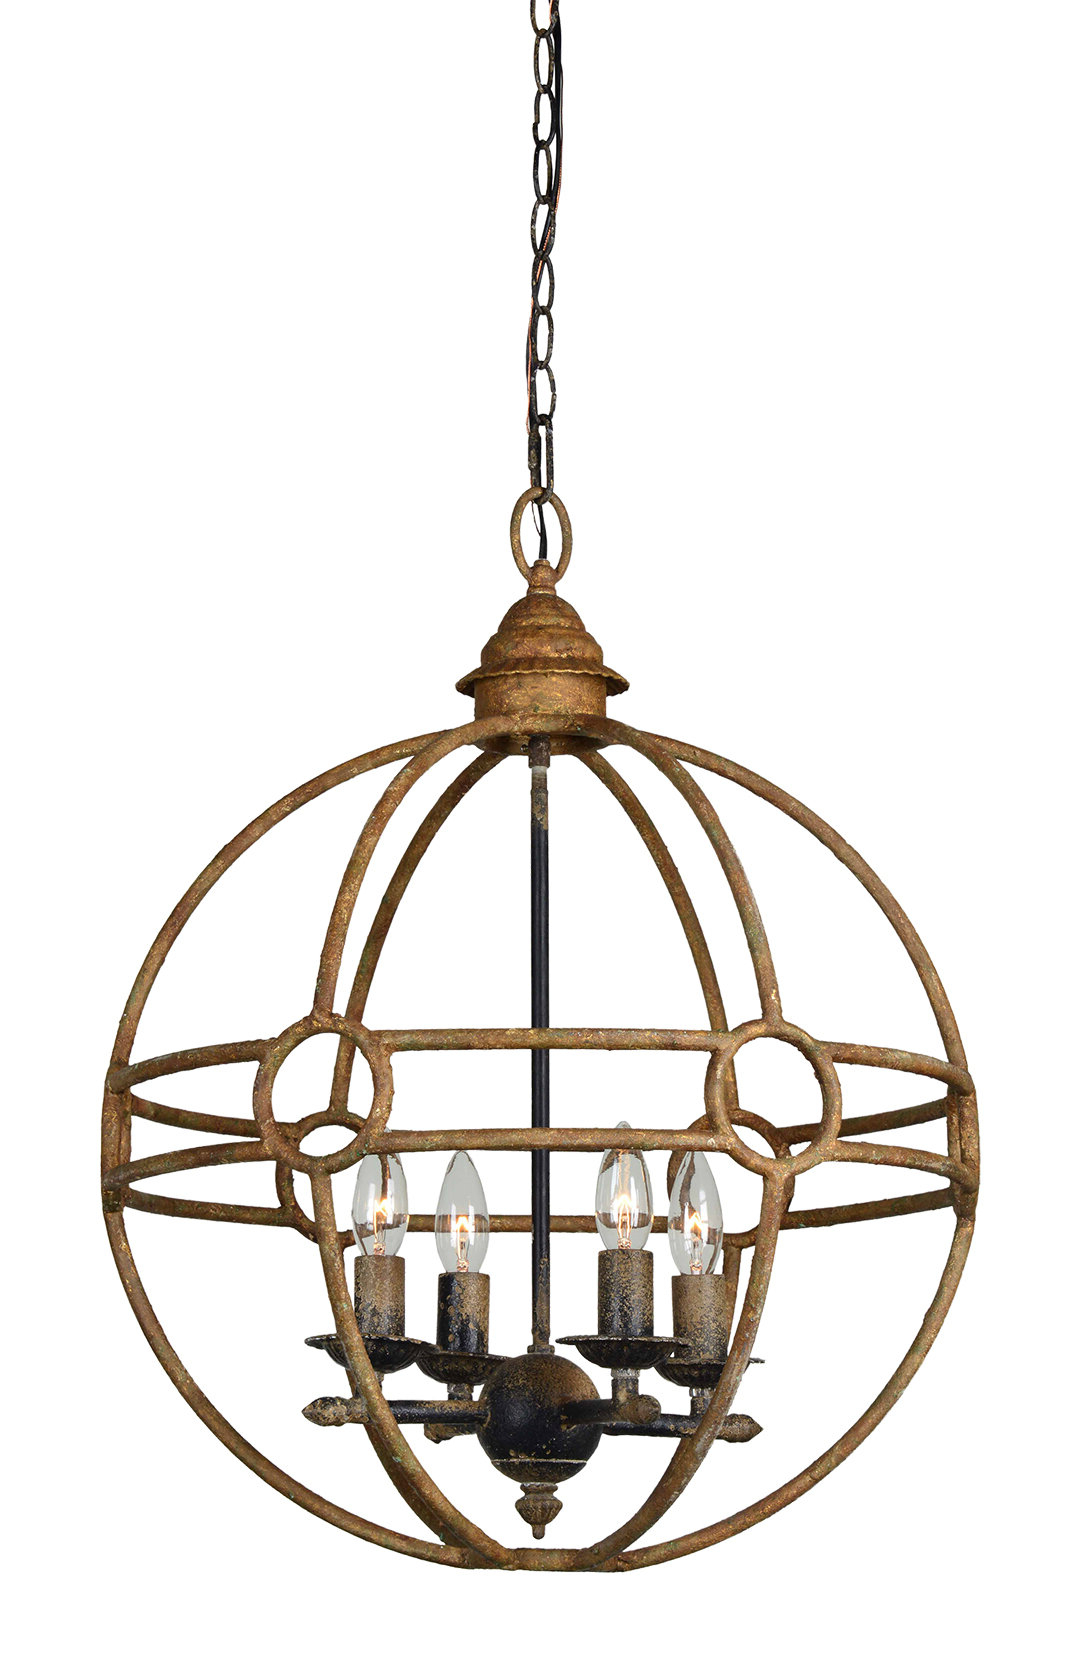 Shipststour 3 Light Globe Chandeliers Pertaining To Favorite Millicent 4 Light Globe Chandelier (Gallery 15 of 20)